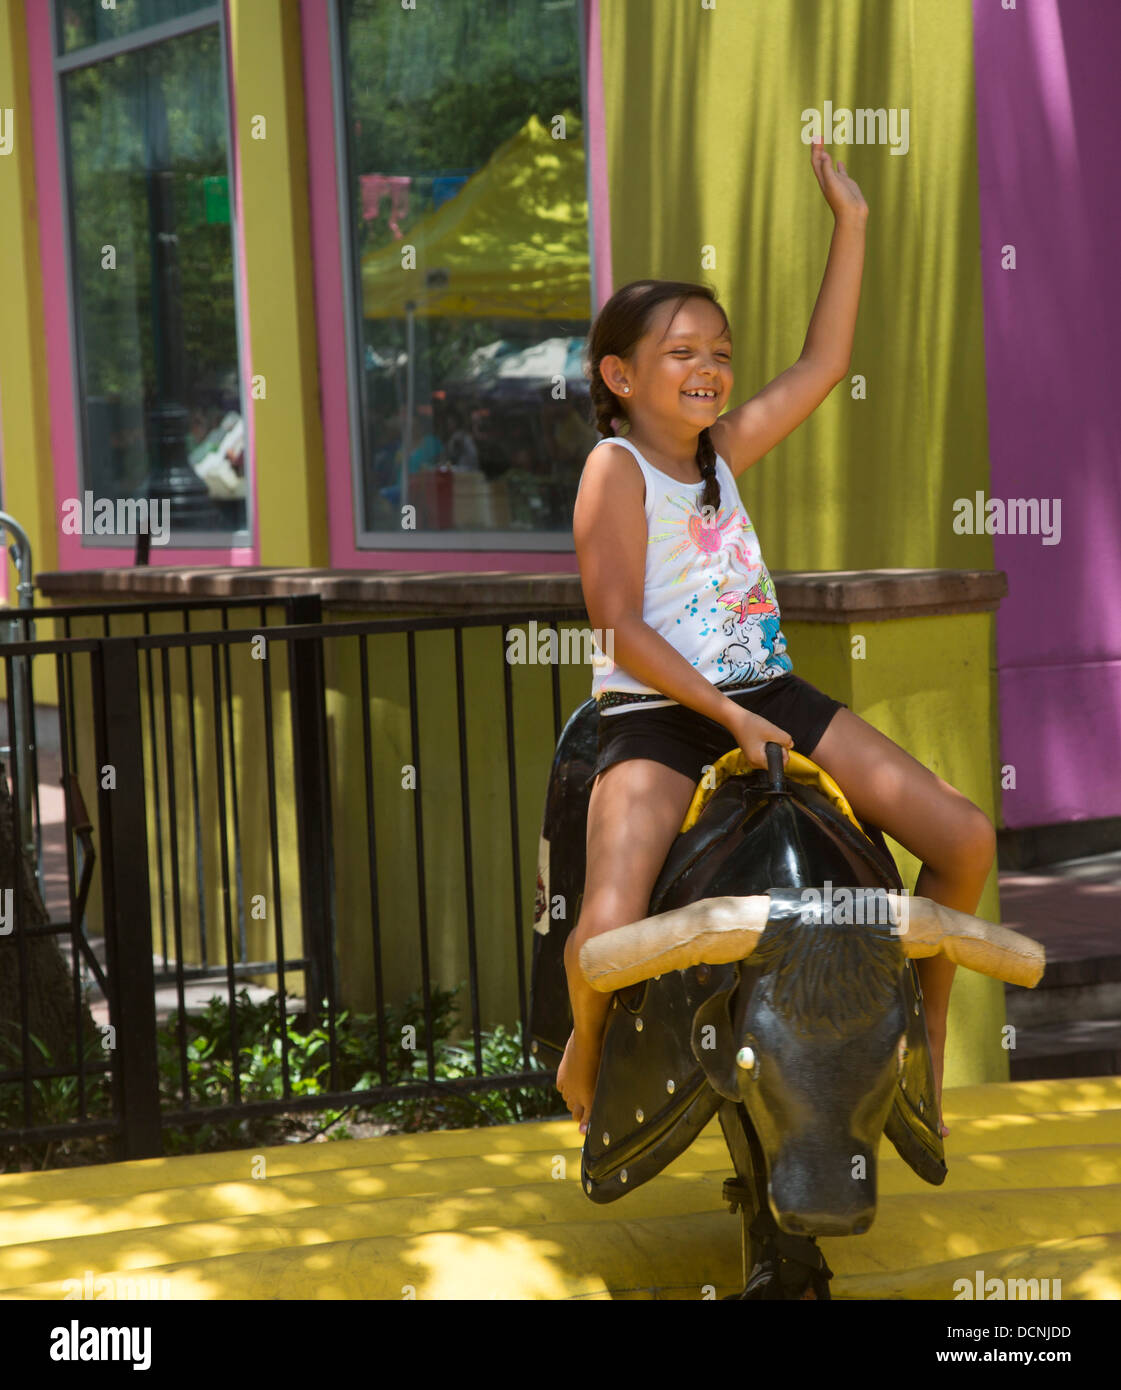 Mechanical Bull Stock Photos & Mechanical Bull Stock Images - Alamy